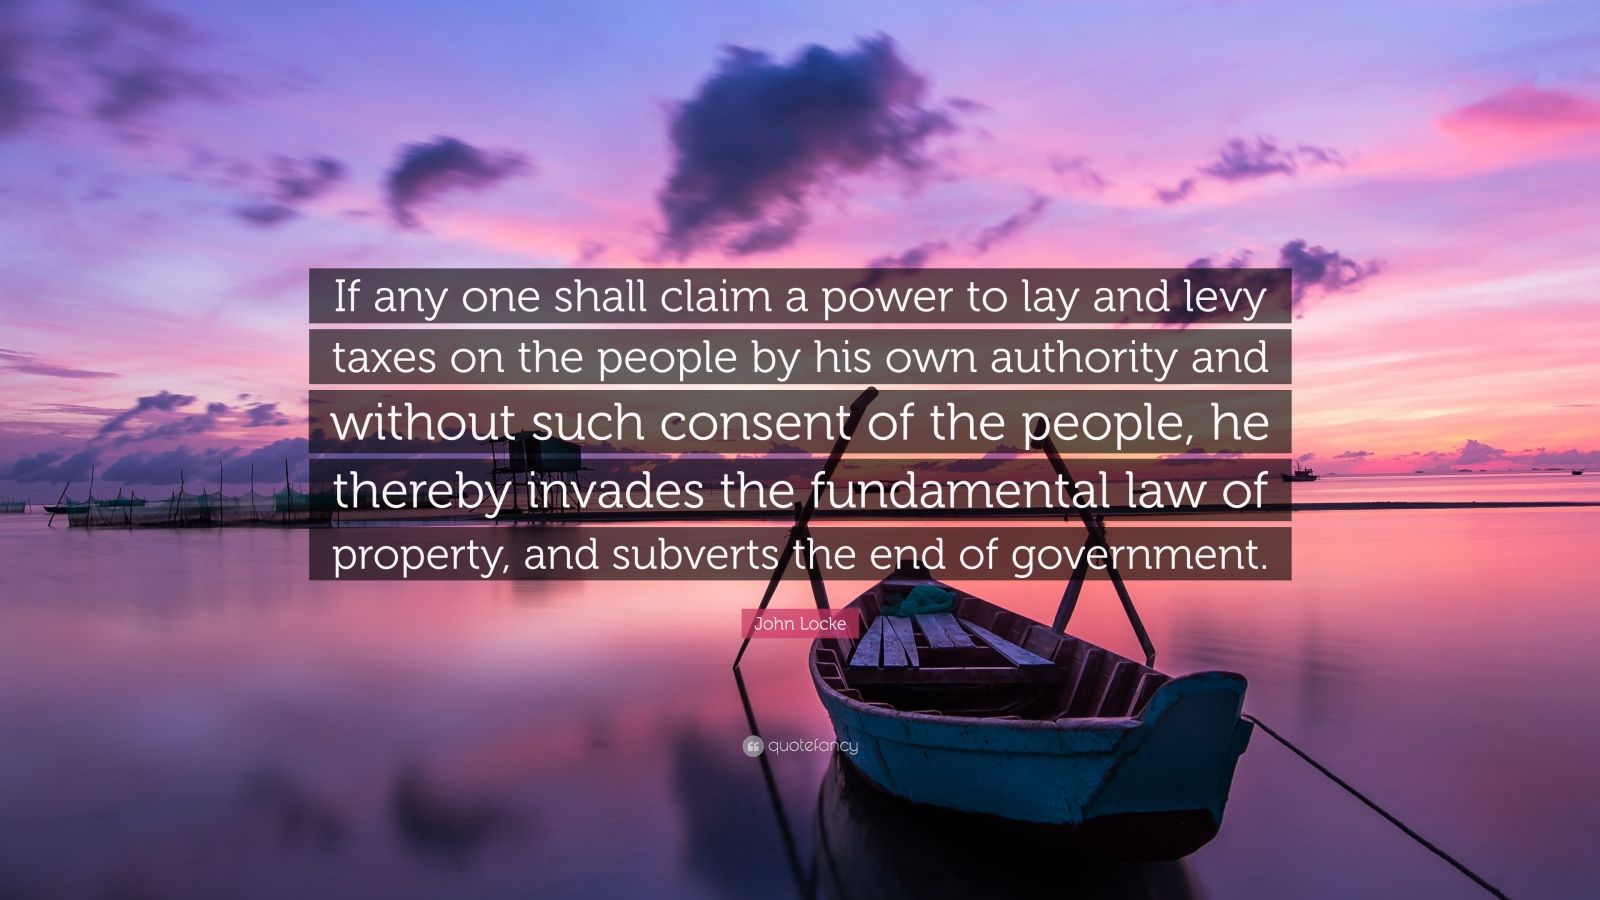 """John Locke Quote: """"If any one shall claim a power to lay and levy taxes on the people by his own authority and without such consent of the people, he thereby invades the fundamental law of property, and subverts the end of government."""""""